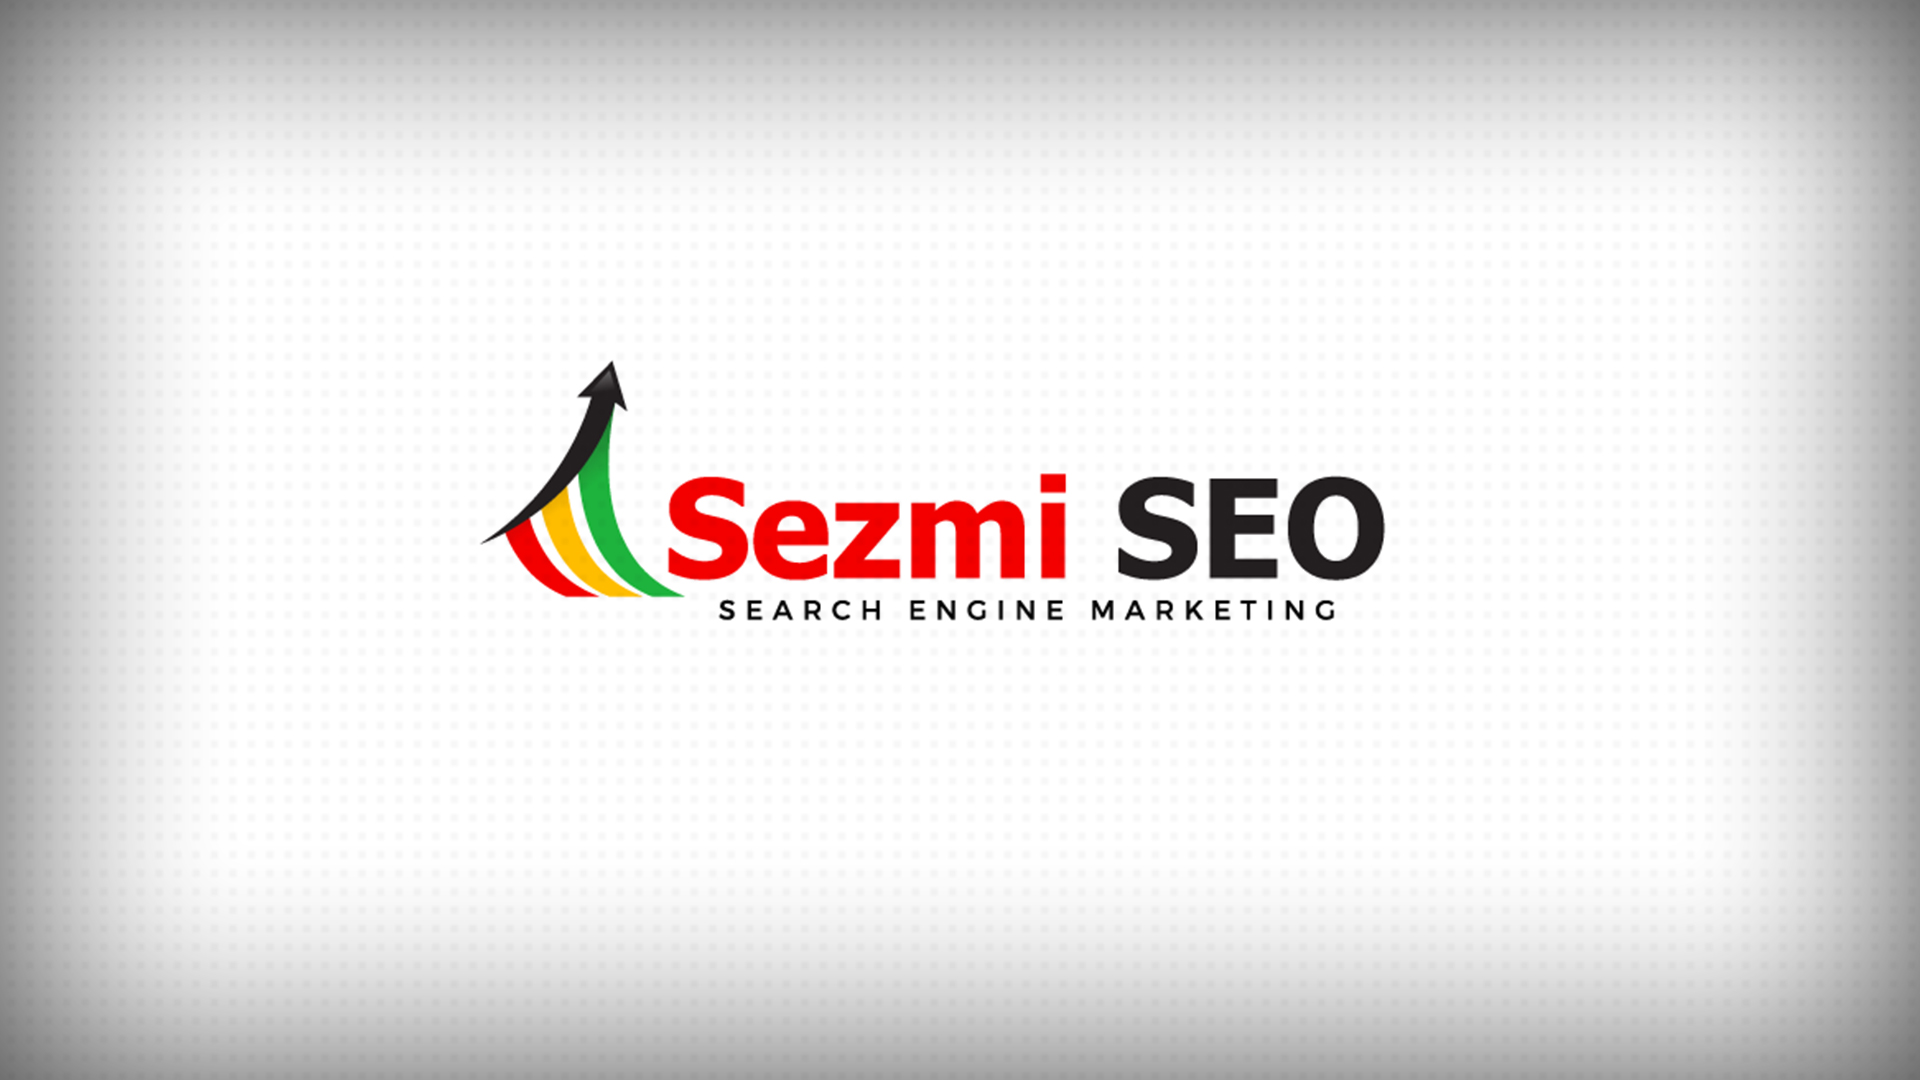 Seattle SEO Expert – Search Engine Marketing